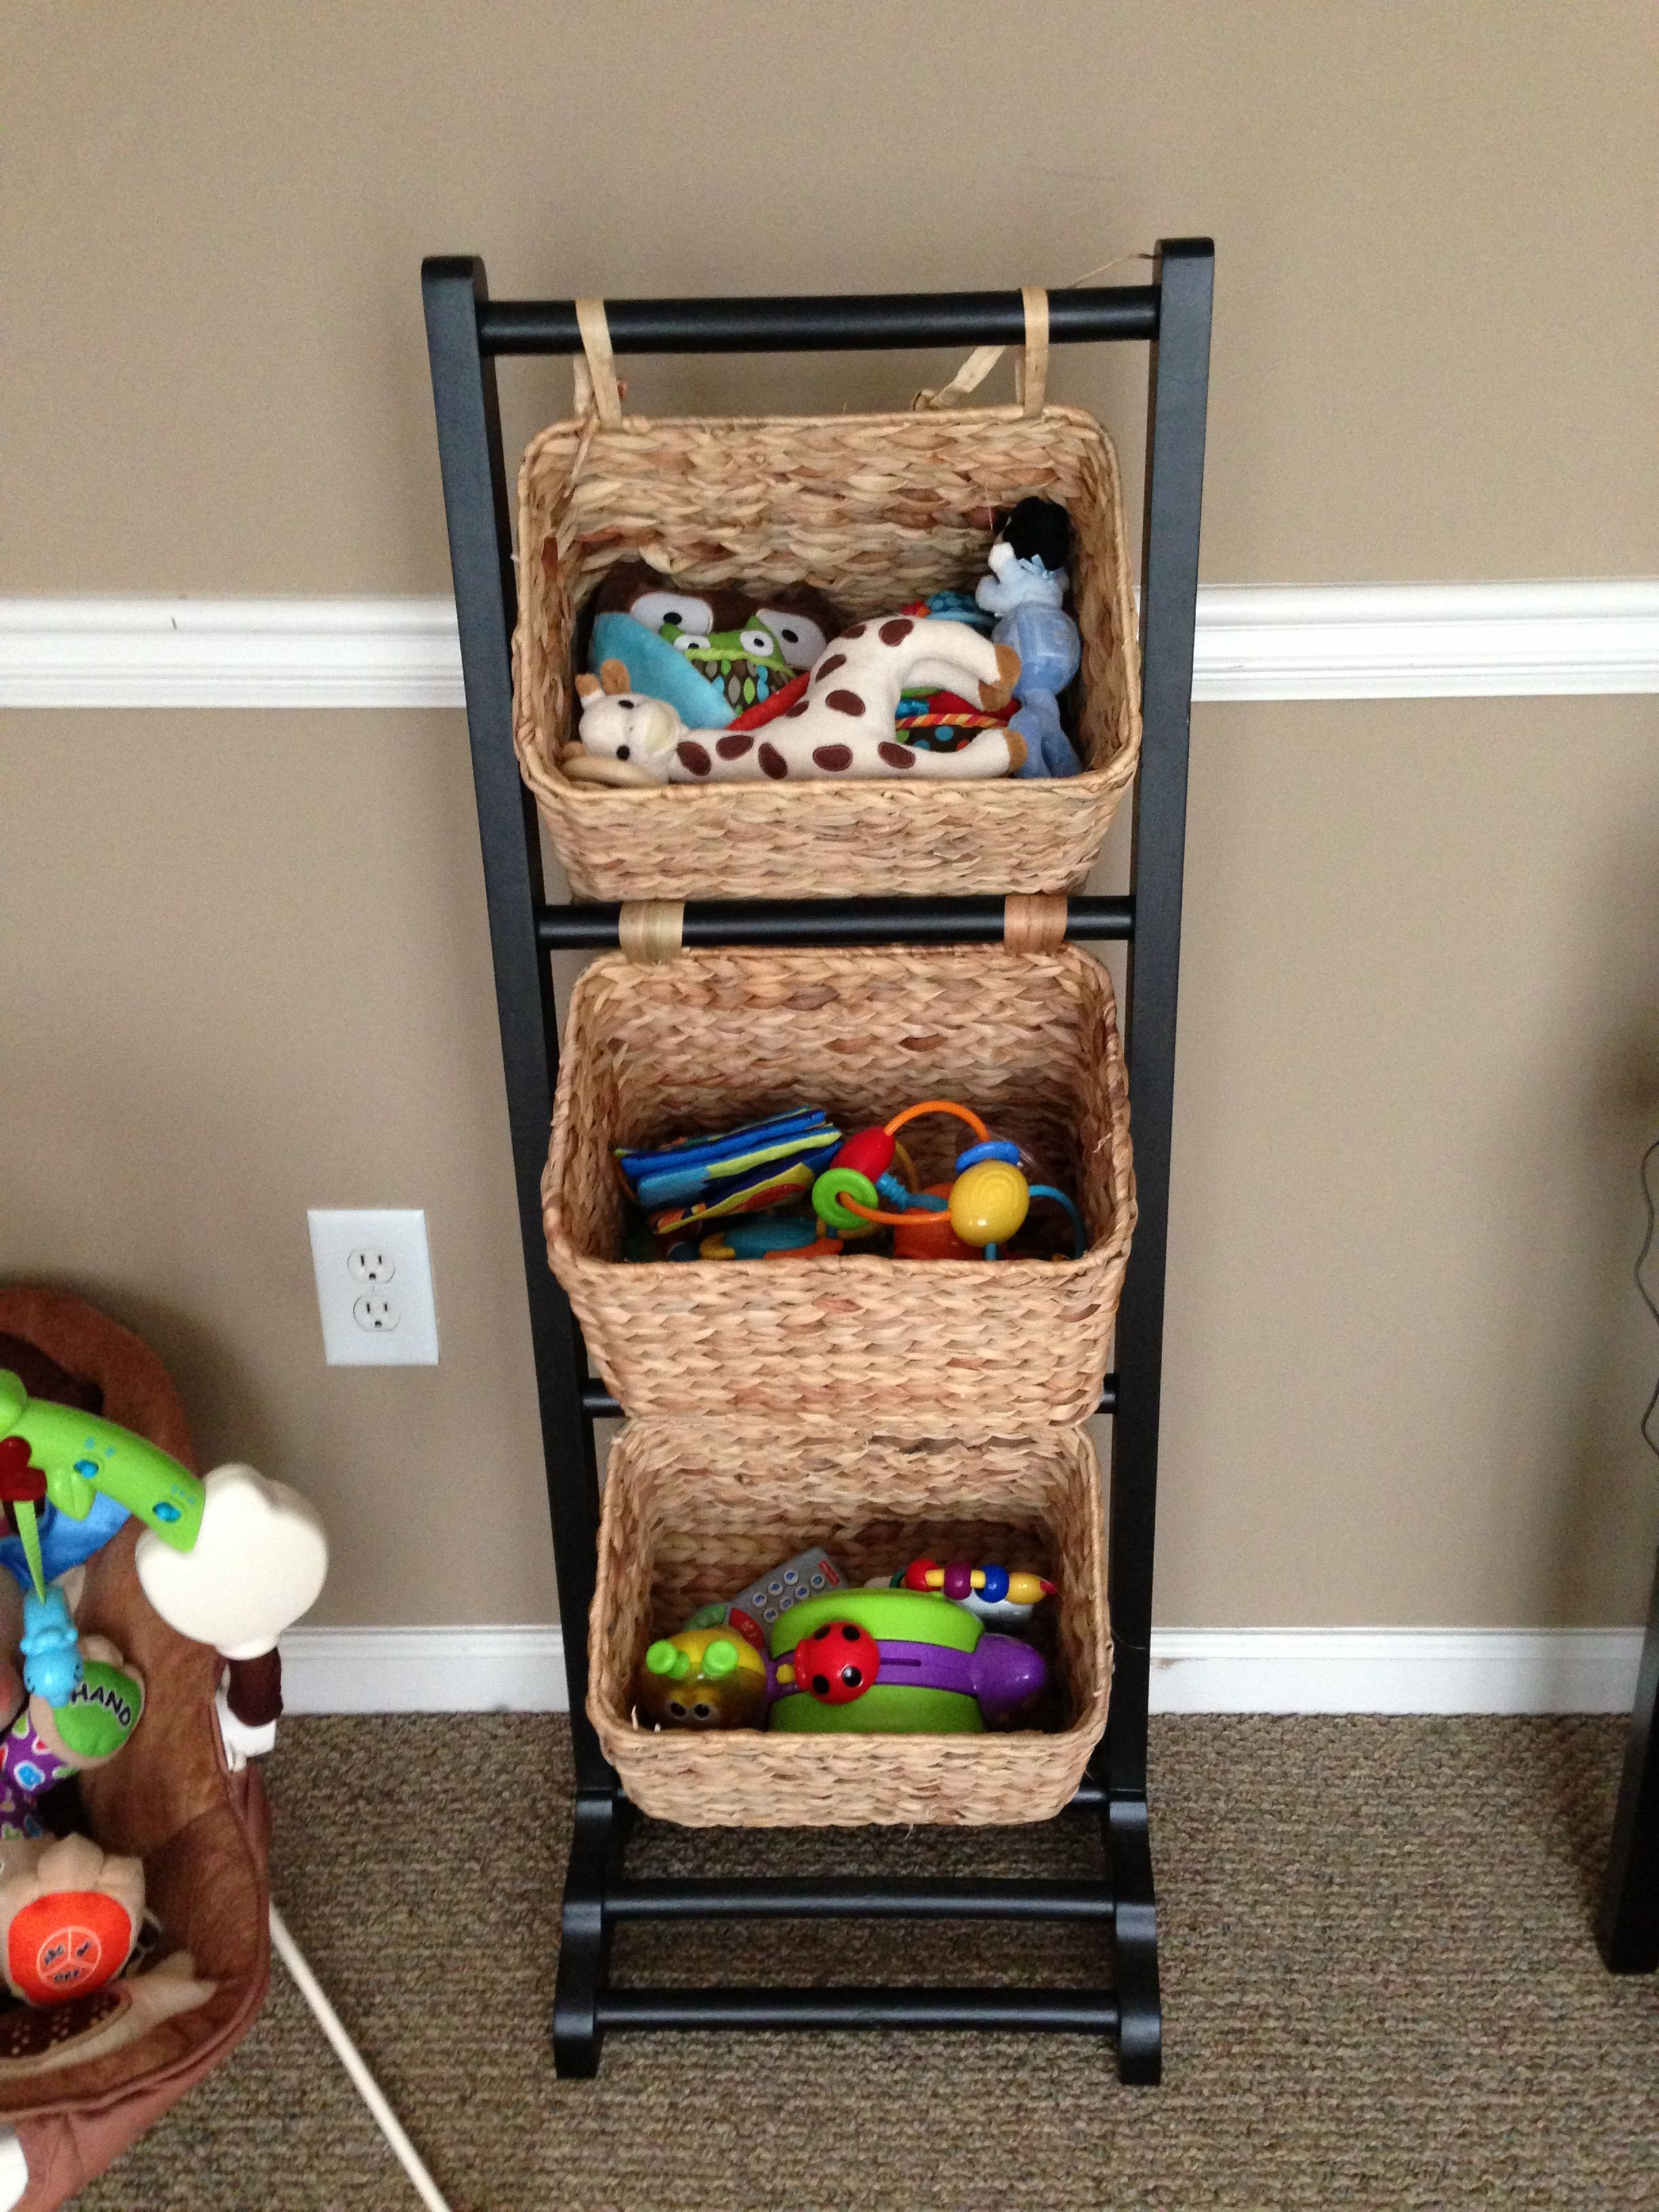 Toy Organizer For Living Room Hc Living Room Toy Storage Toy Storage Organization Toy Rooms